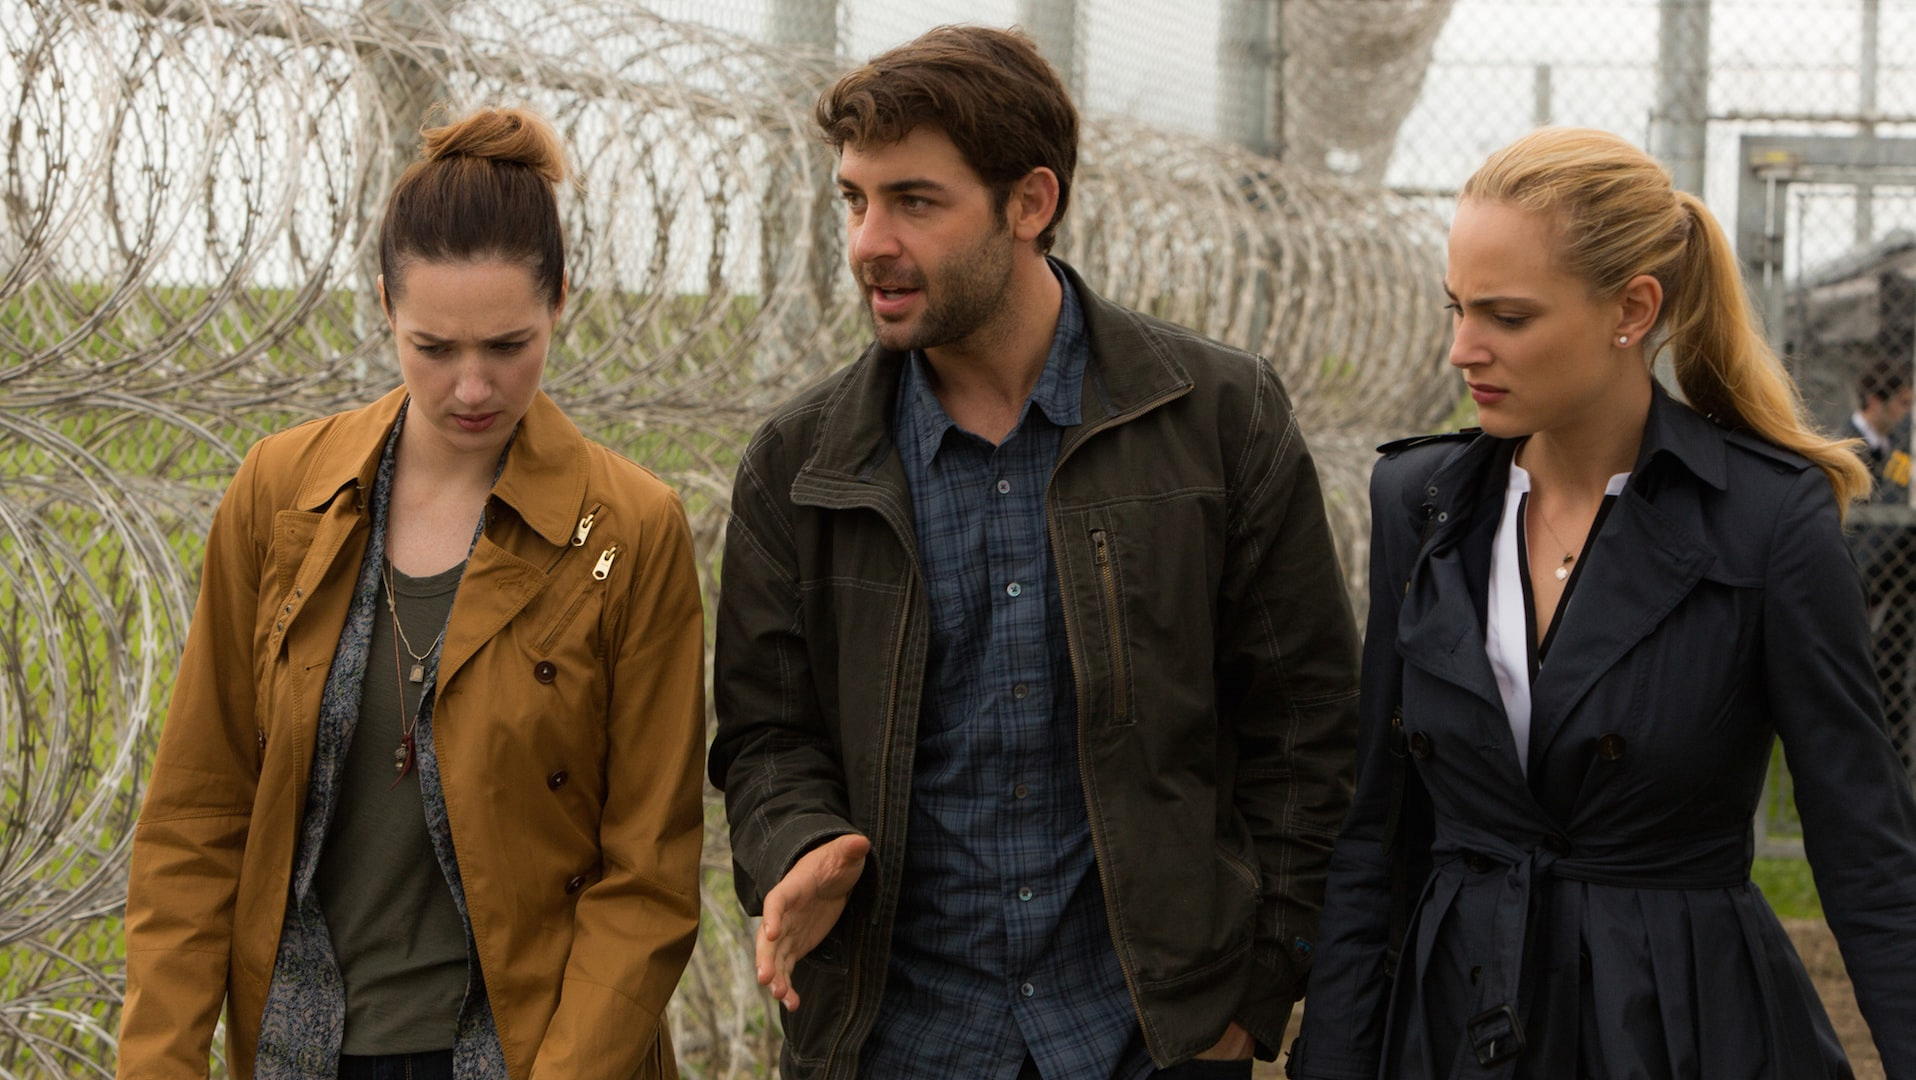 Kristen Connolly as Jamie Campbell, James Wolk as Jackson Oz, and Nora Arnezeder as Chloe Tousignant.